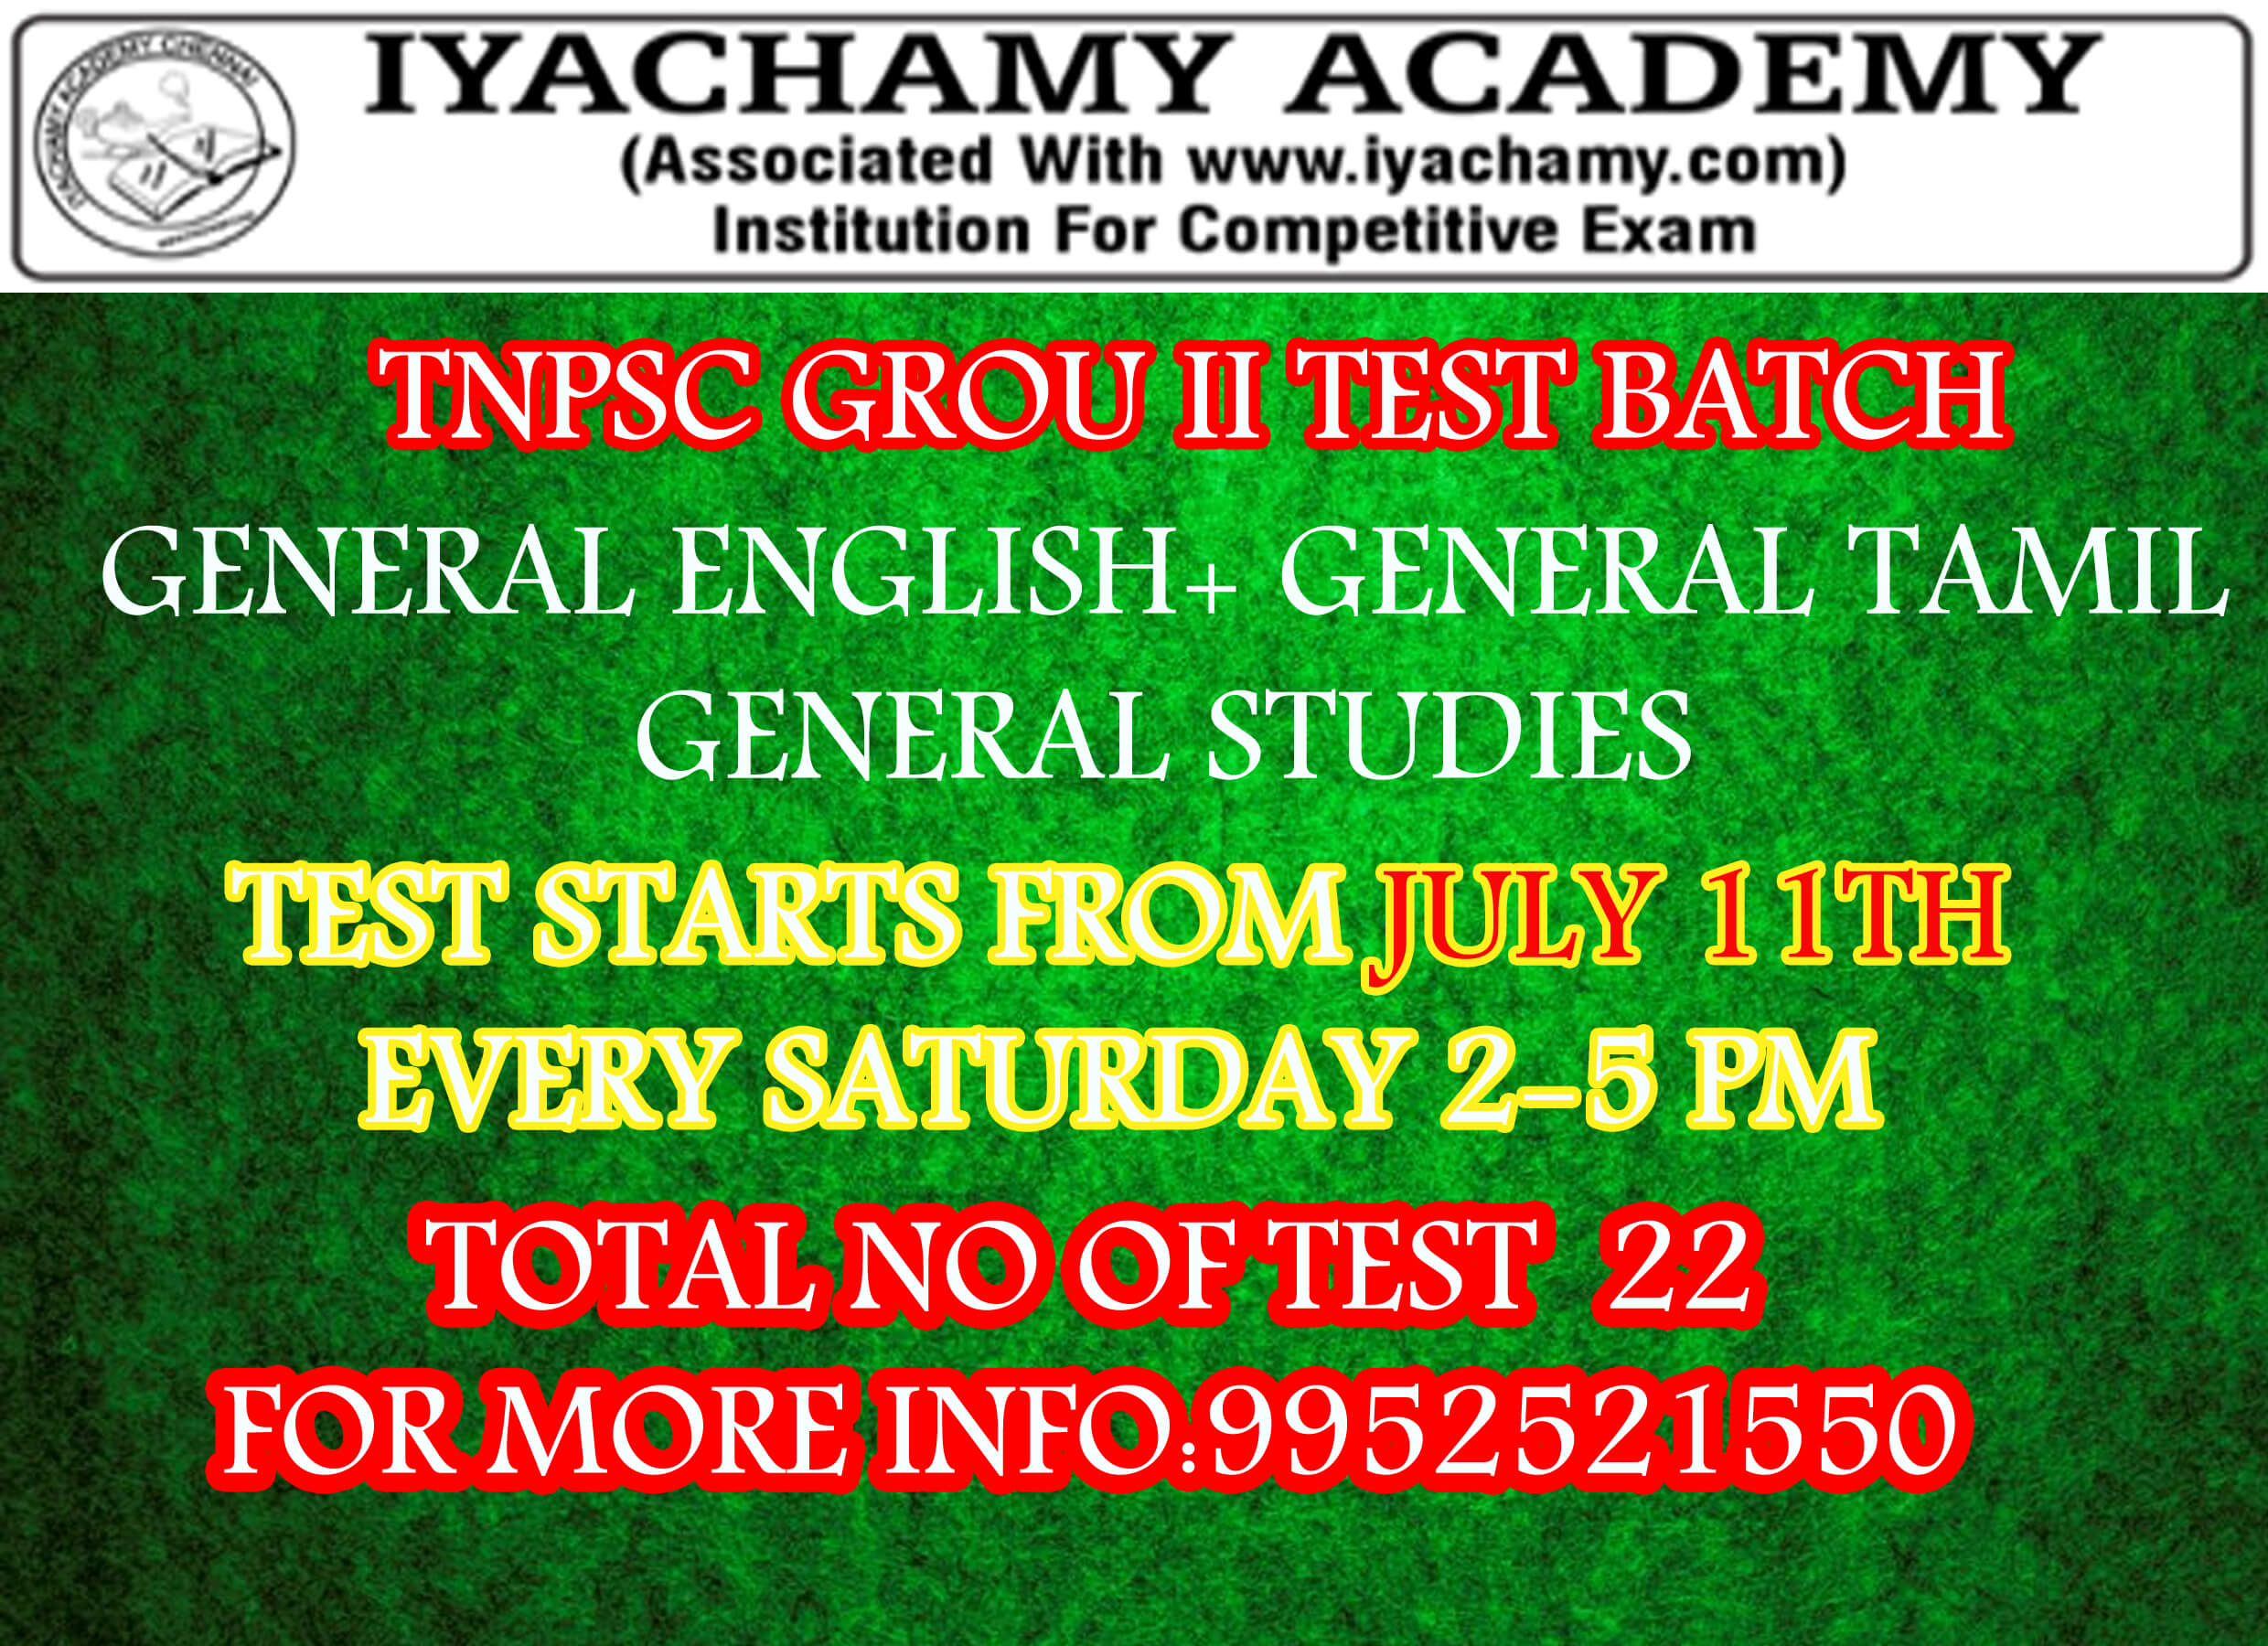 TNPSC GROUP II PRELIMINARY TEST BATCH SCHEDULE|TEST STARTS FROM JULY 14